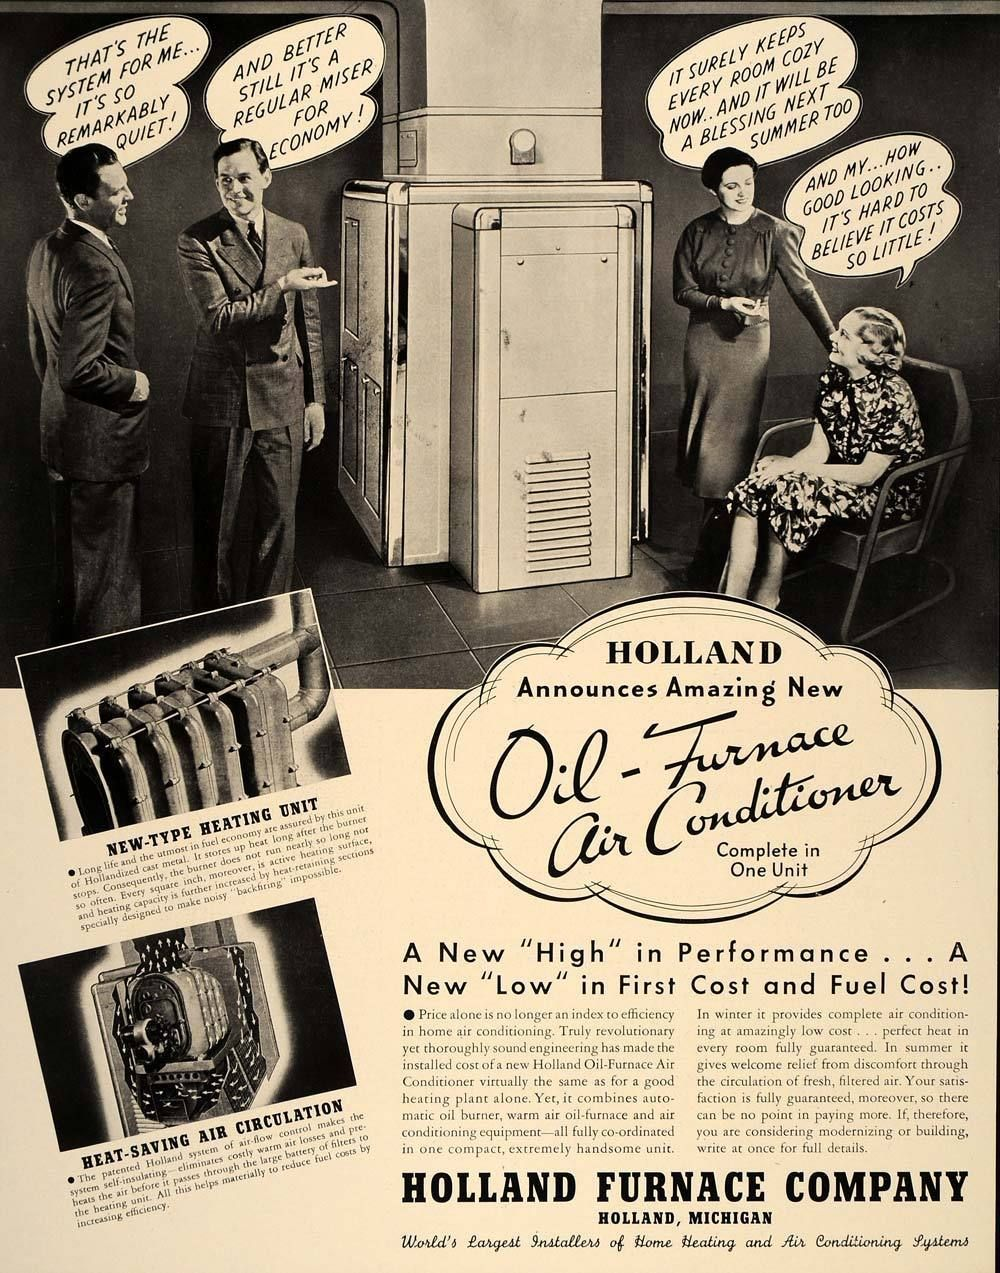 original vintage antique 1924 5 wards ads for coal heaters 1937 ad holland oil furnace air conditioner michigan original advertising